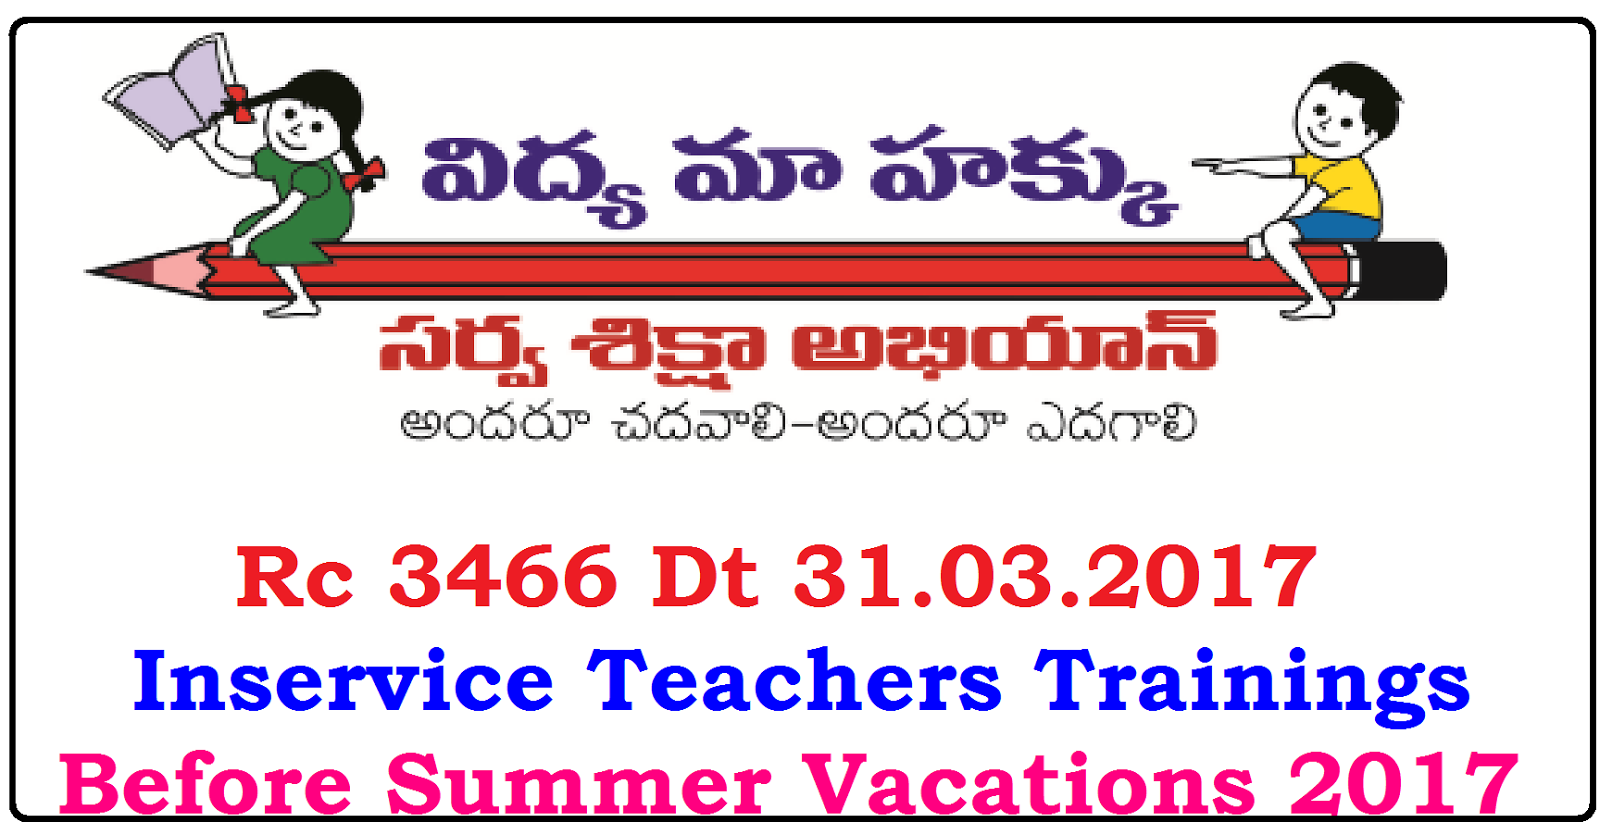 Rc 3466 Inservice Teachers Trainings Before Summer Vacations 2017 DSE Telangana